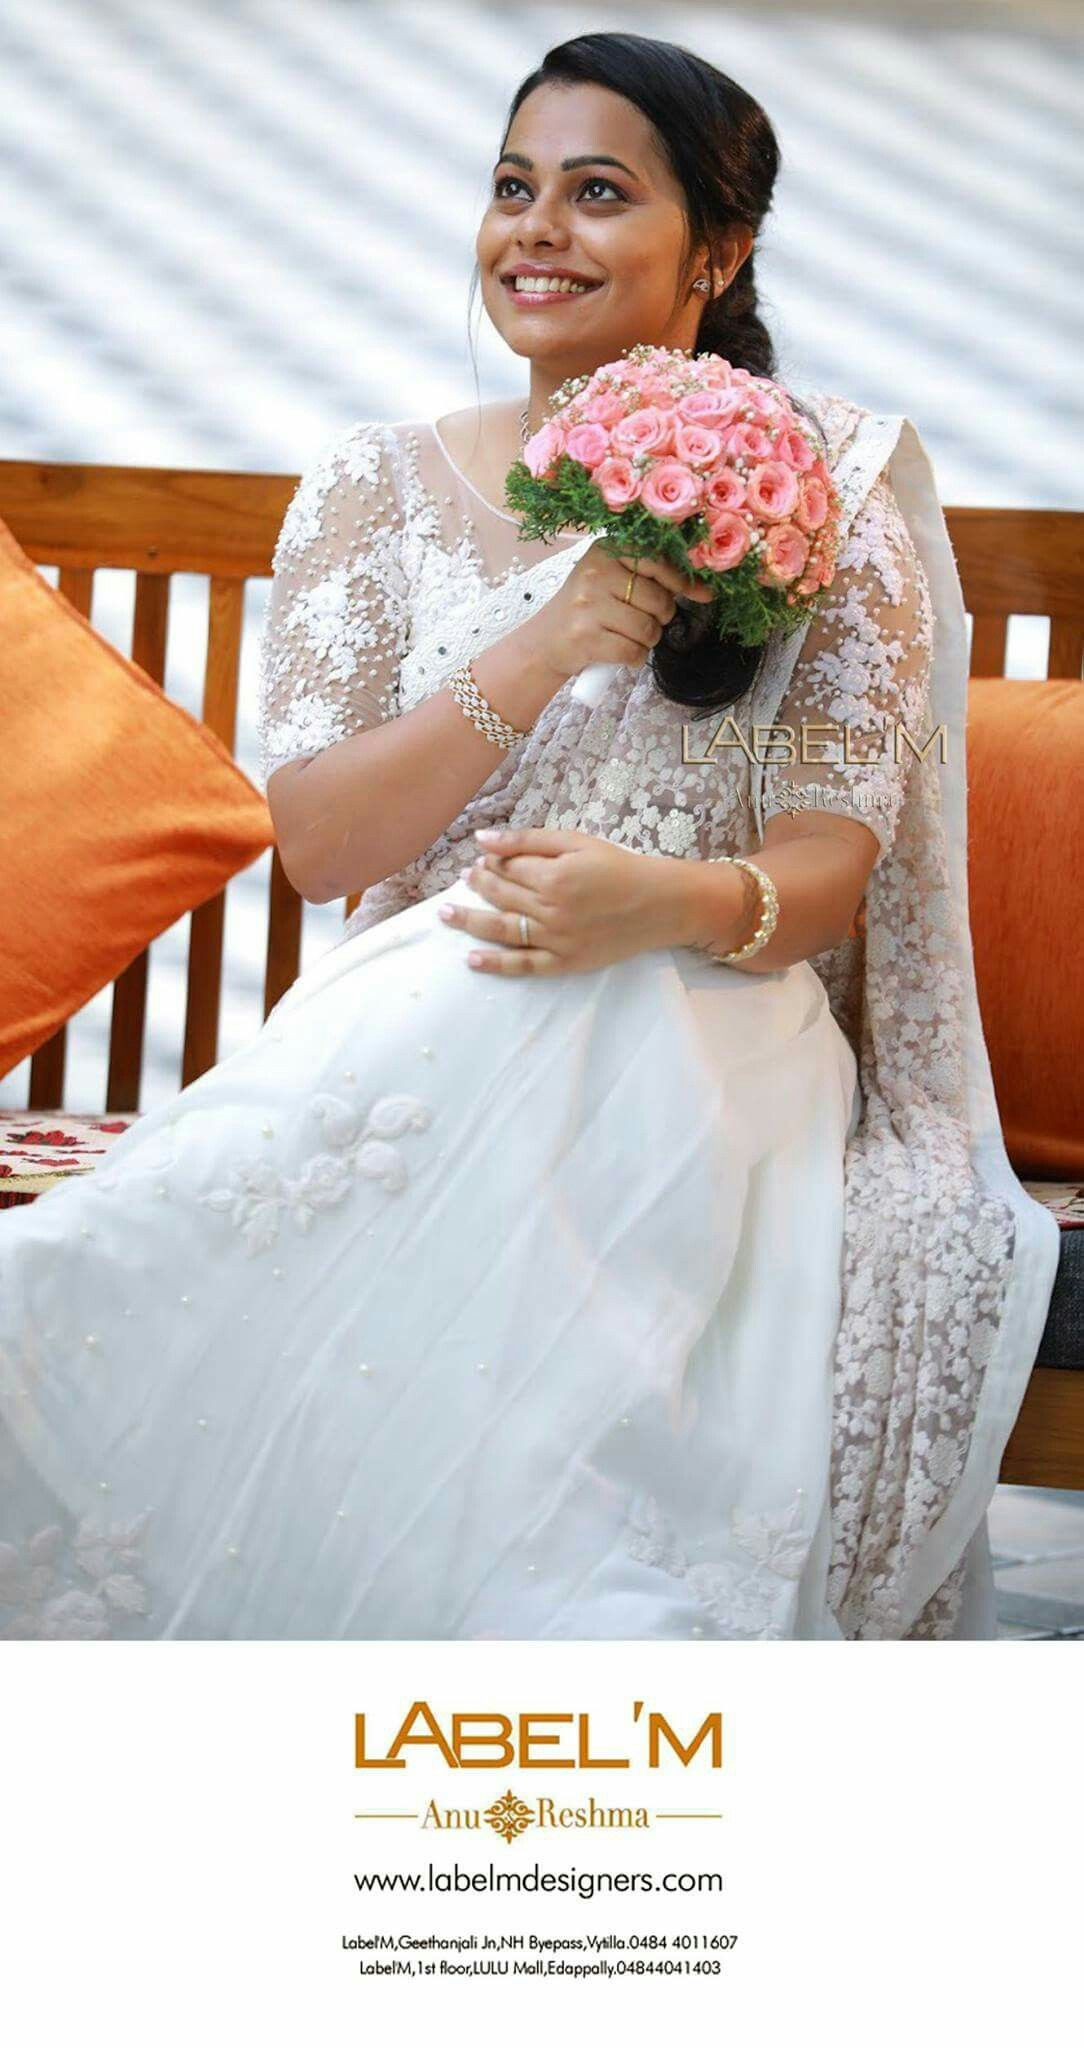 Kerala Christian Bride Wedding Pinterest Kerala Christian and